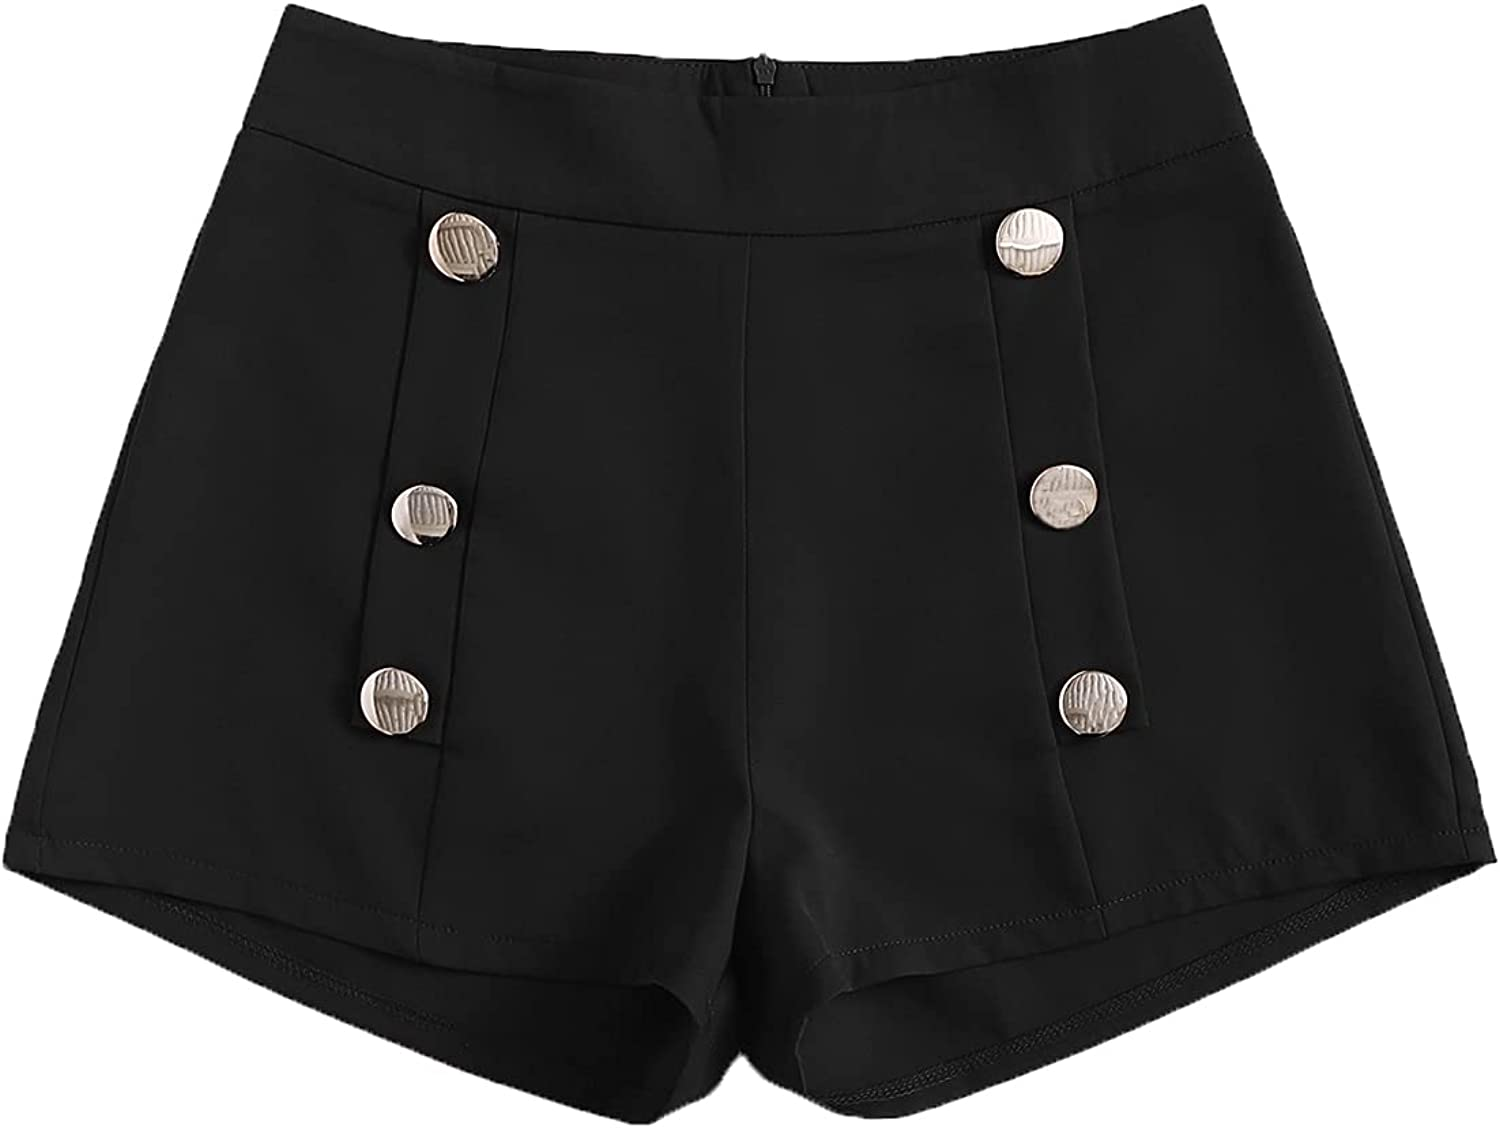 SweatyRocks Women's Casual Double Breasted Button Front Zipper Back Shorts